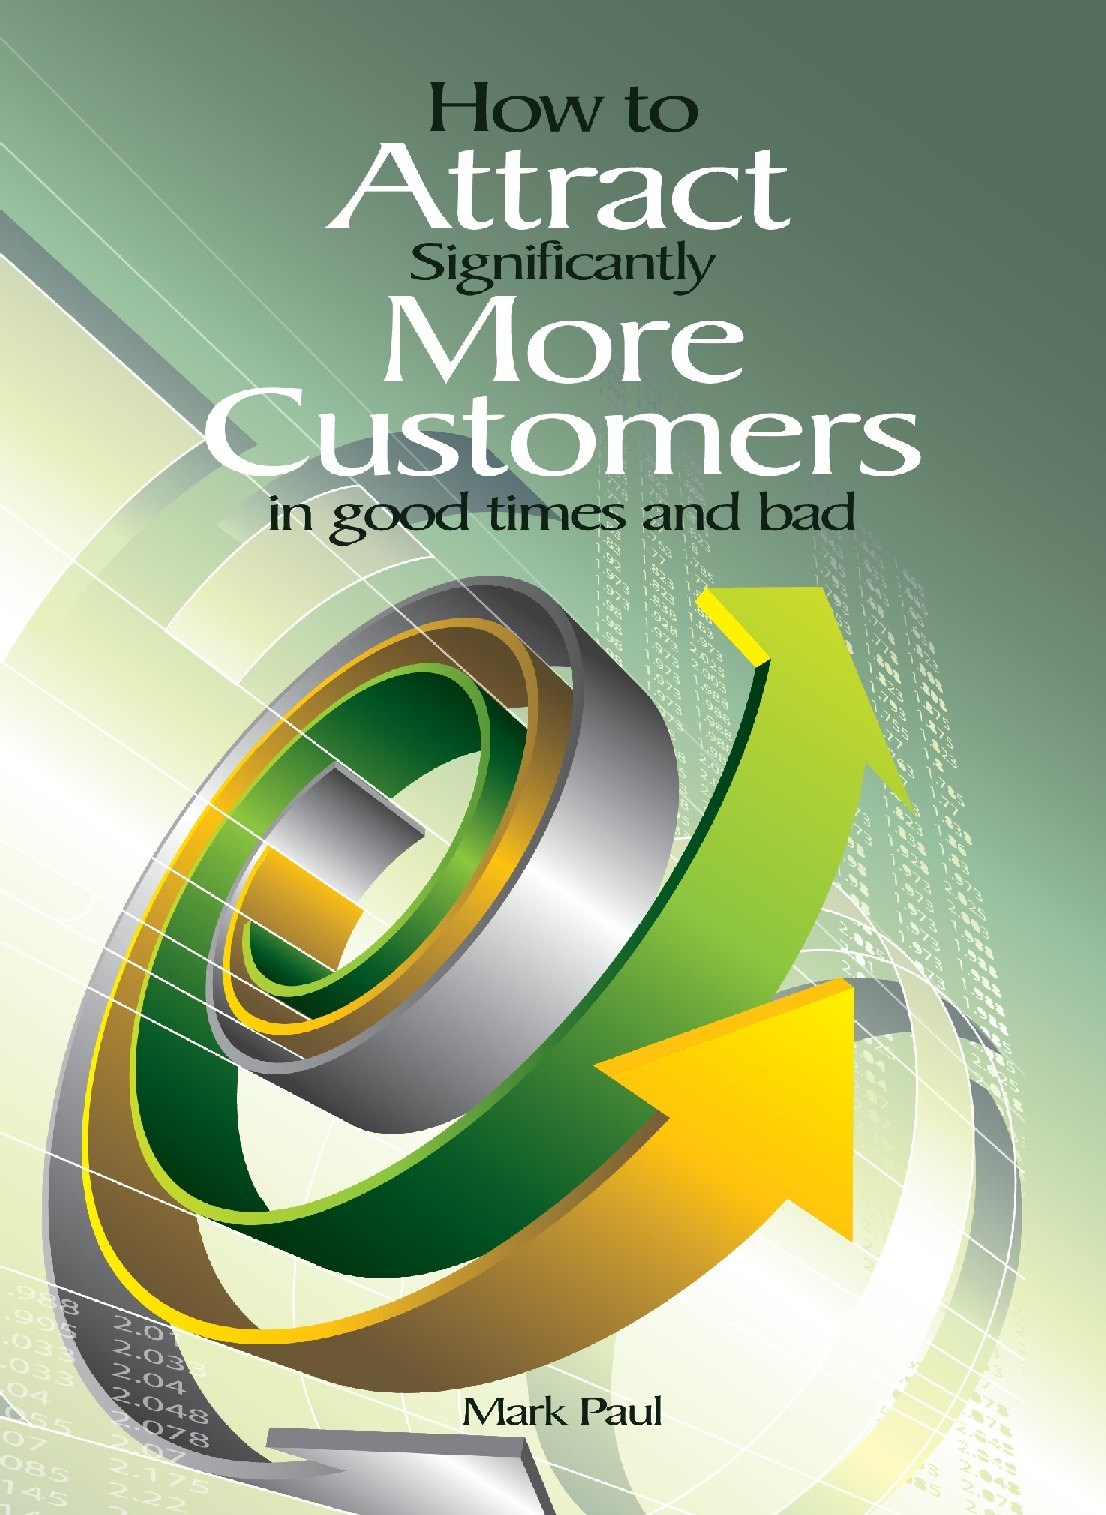 7AttractMoreCustomers-Cover.jpg (215035 bytes)